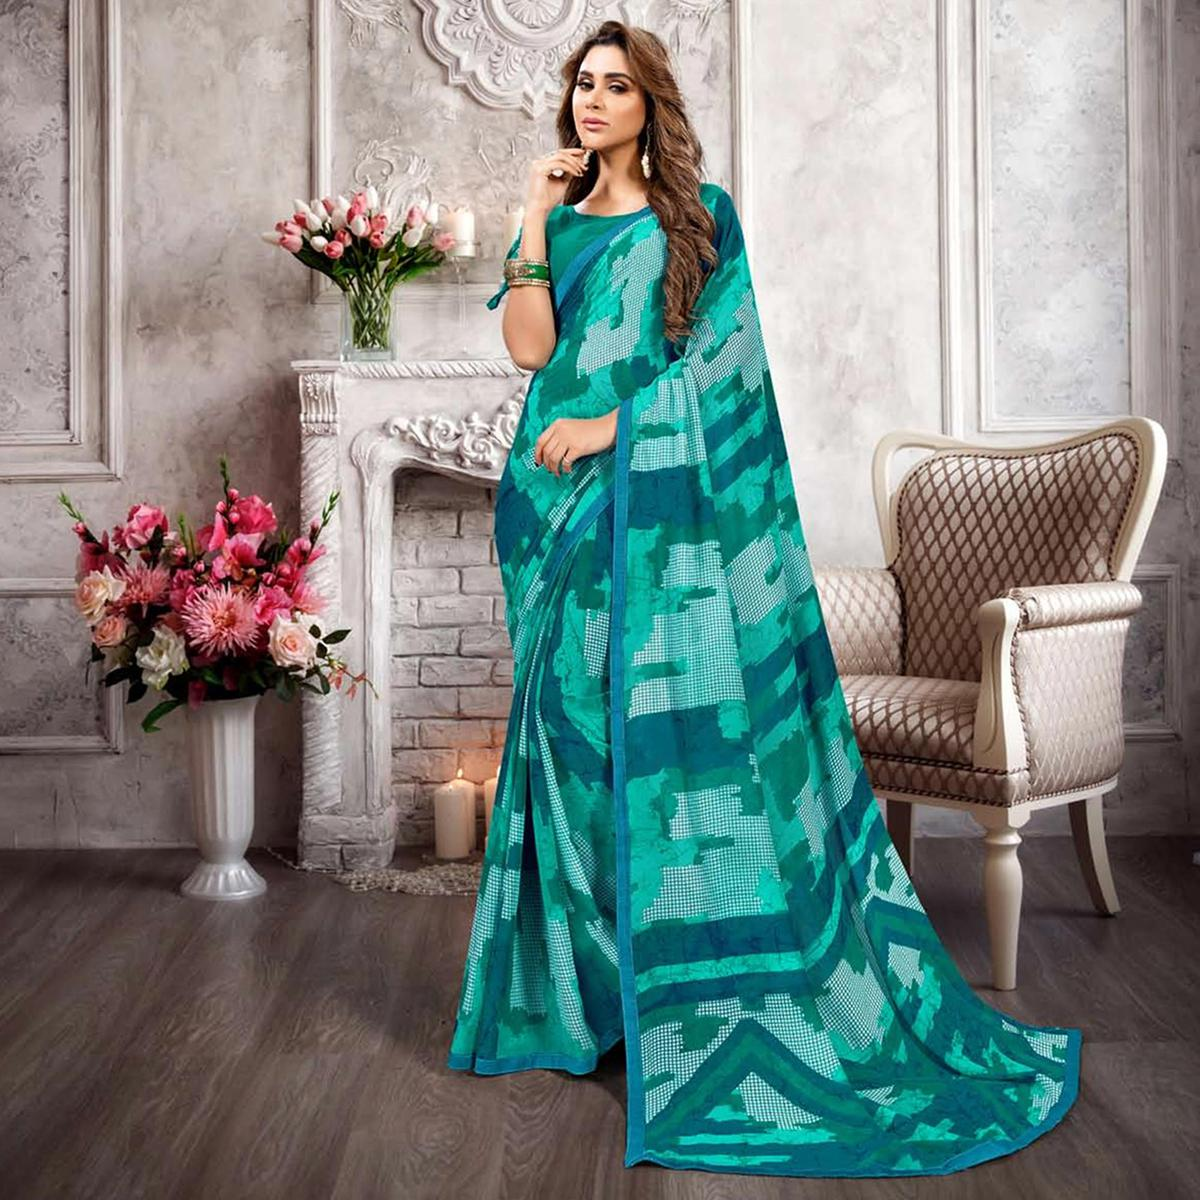 Staring Aqua Green Colored Casual Printed Heavy Georgette Saree With Lace Border